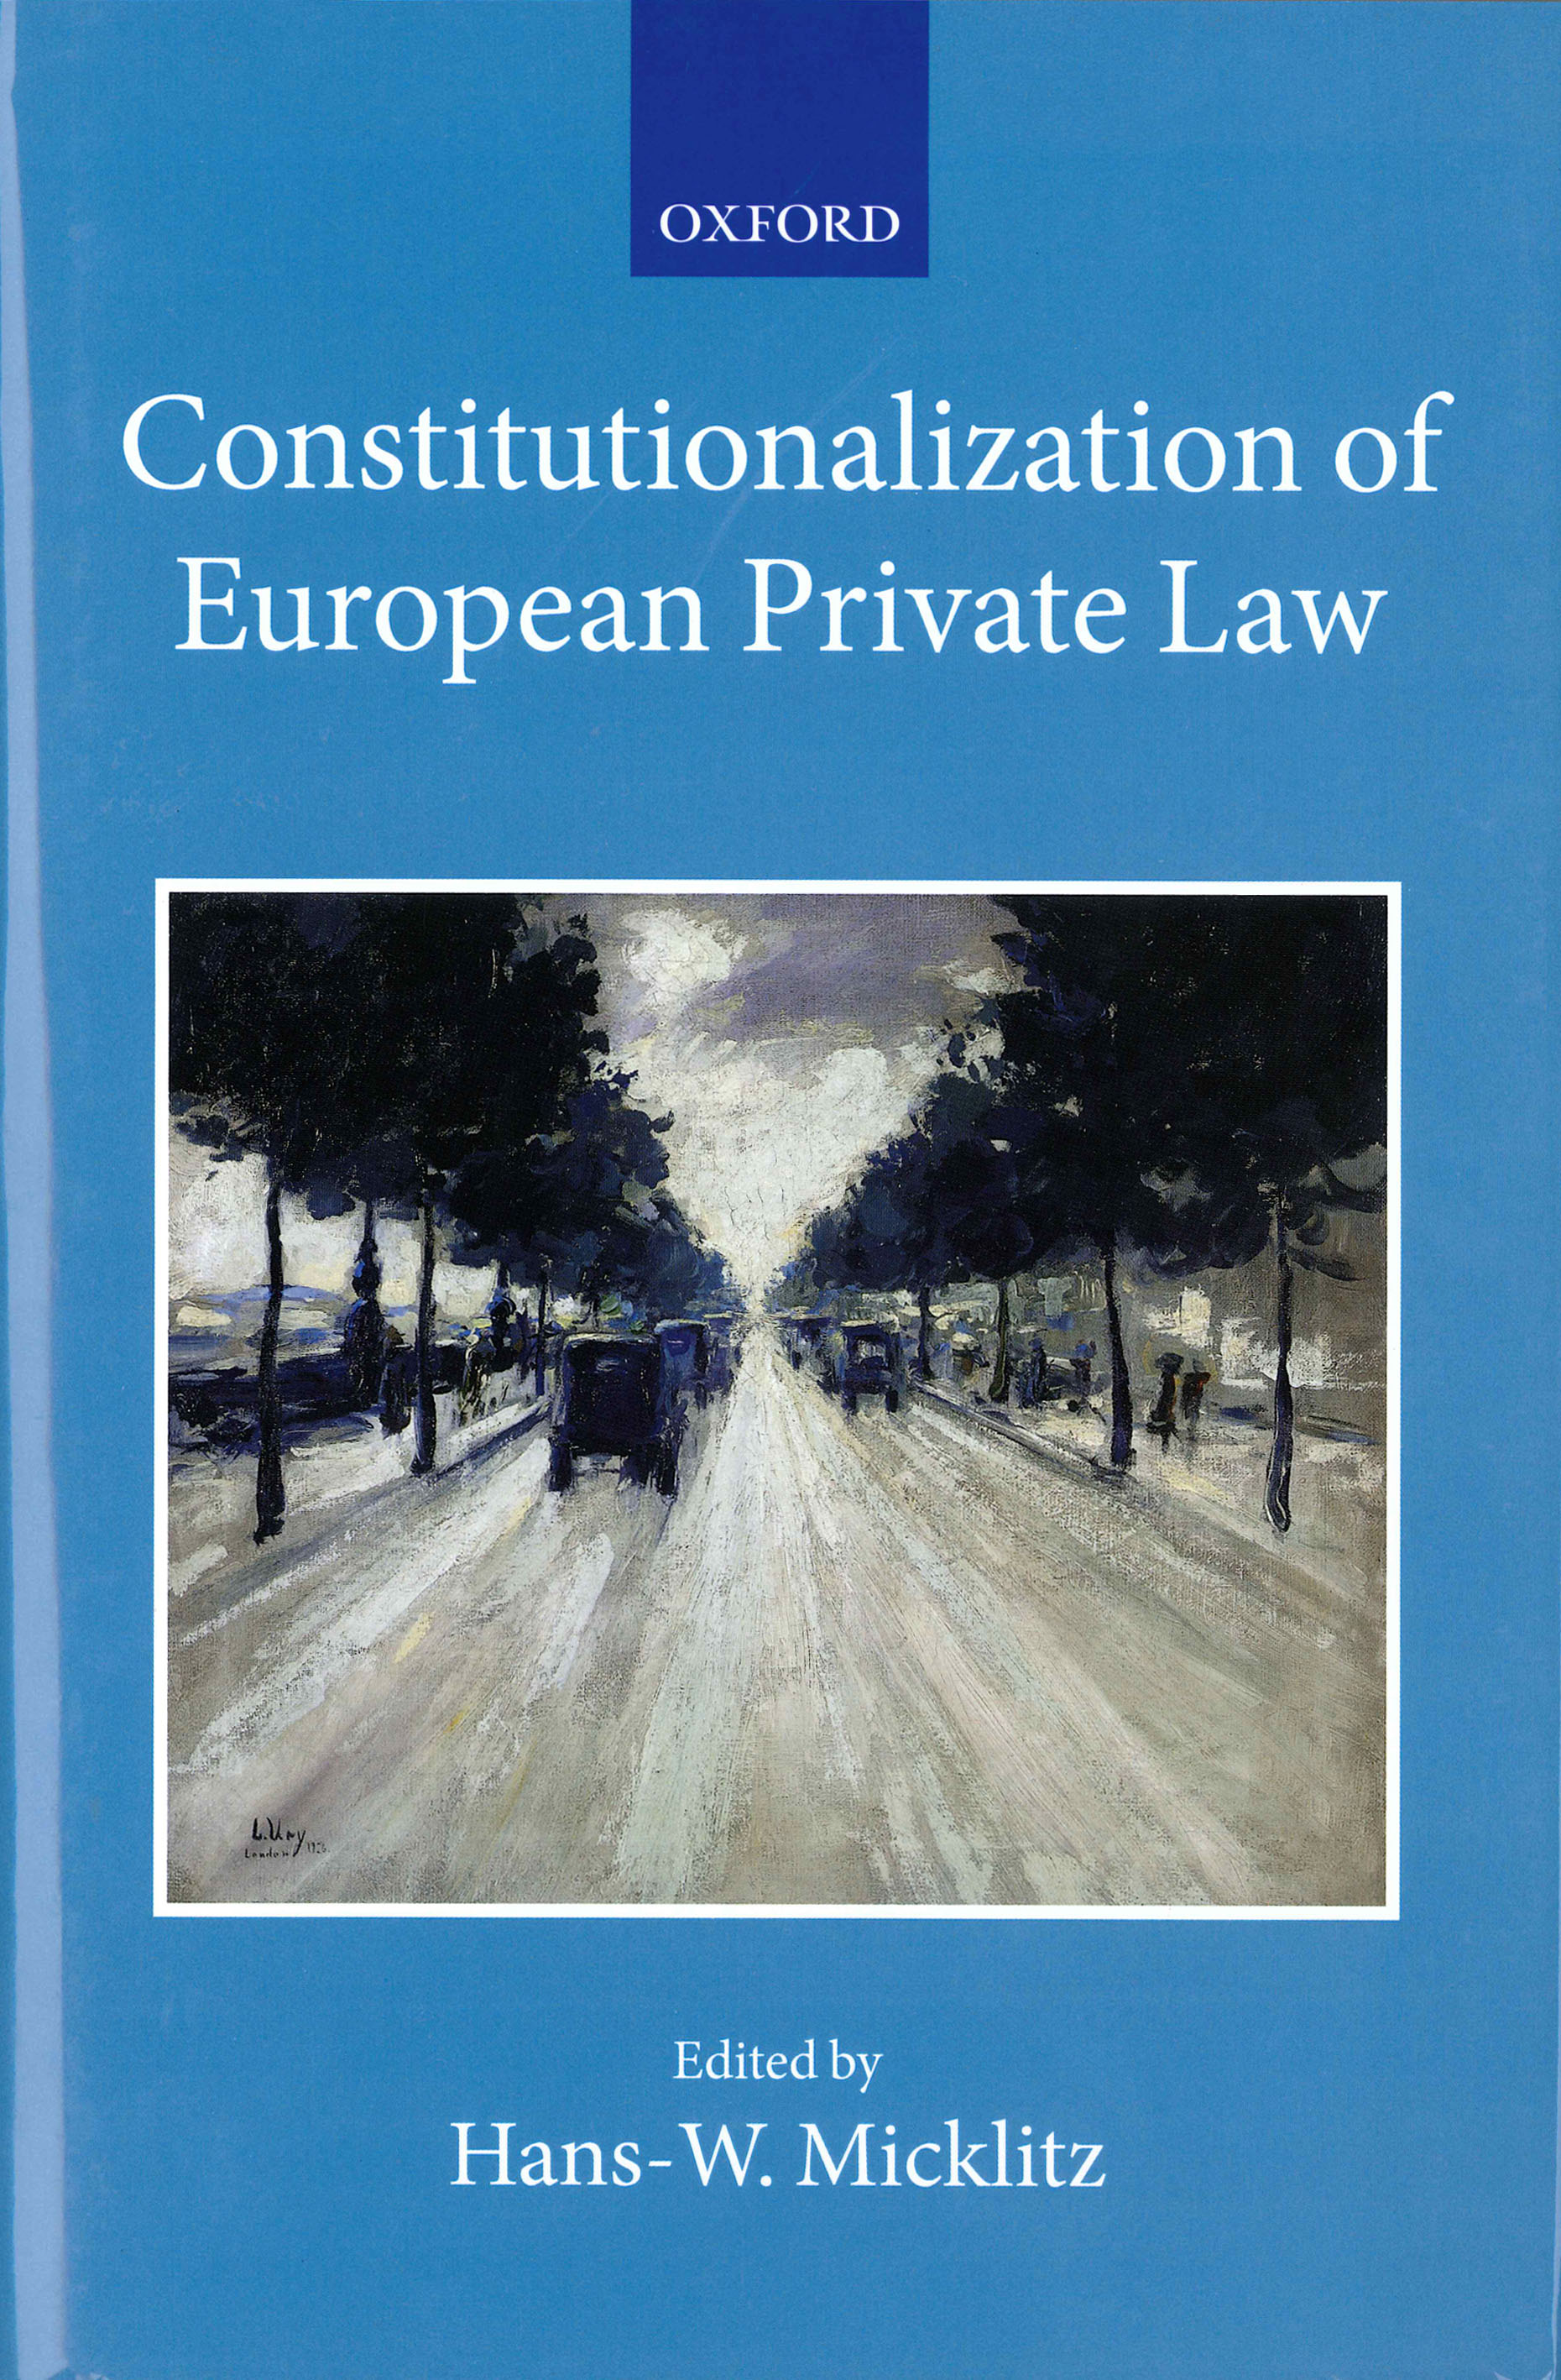 Constitutionalization of European private law